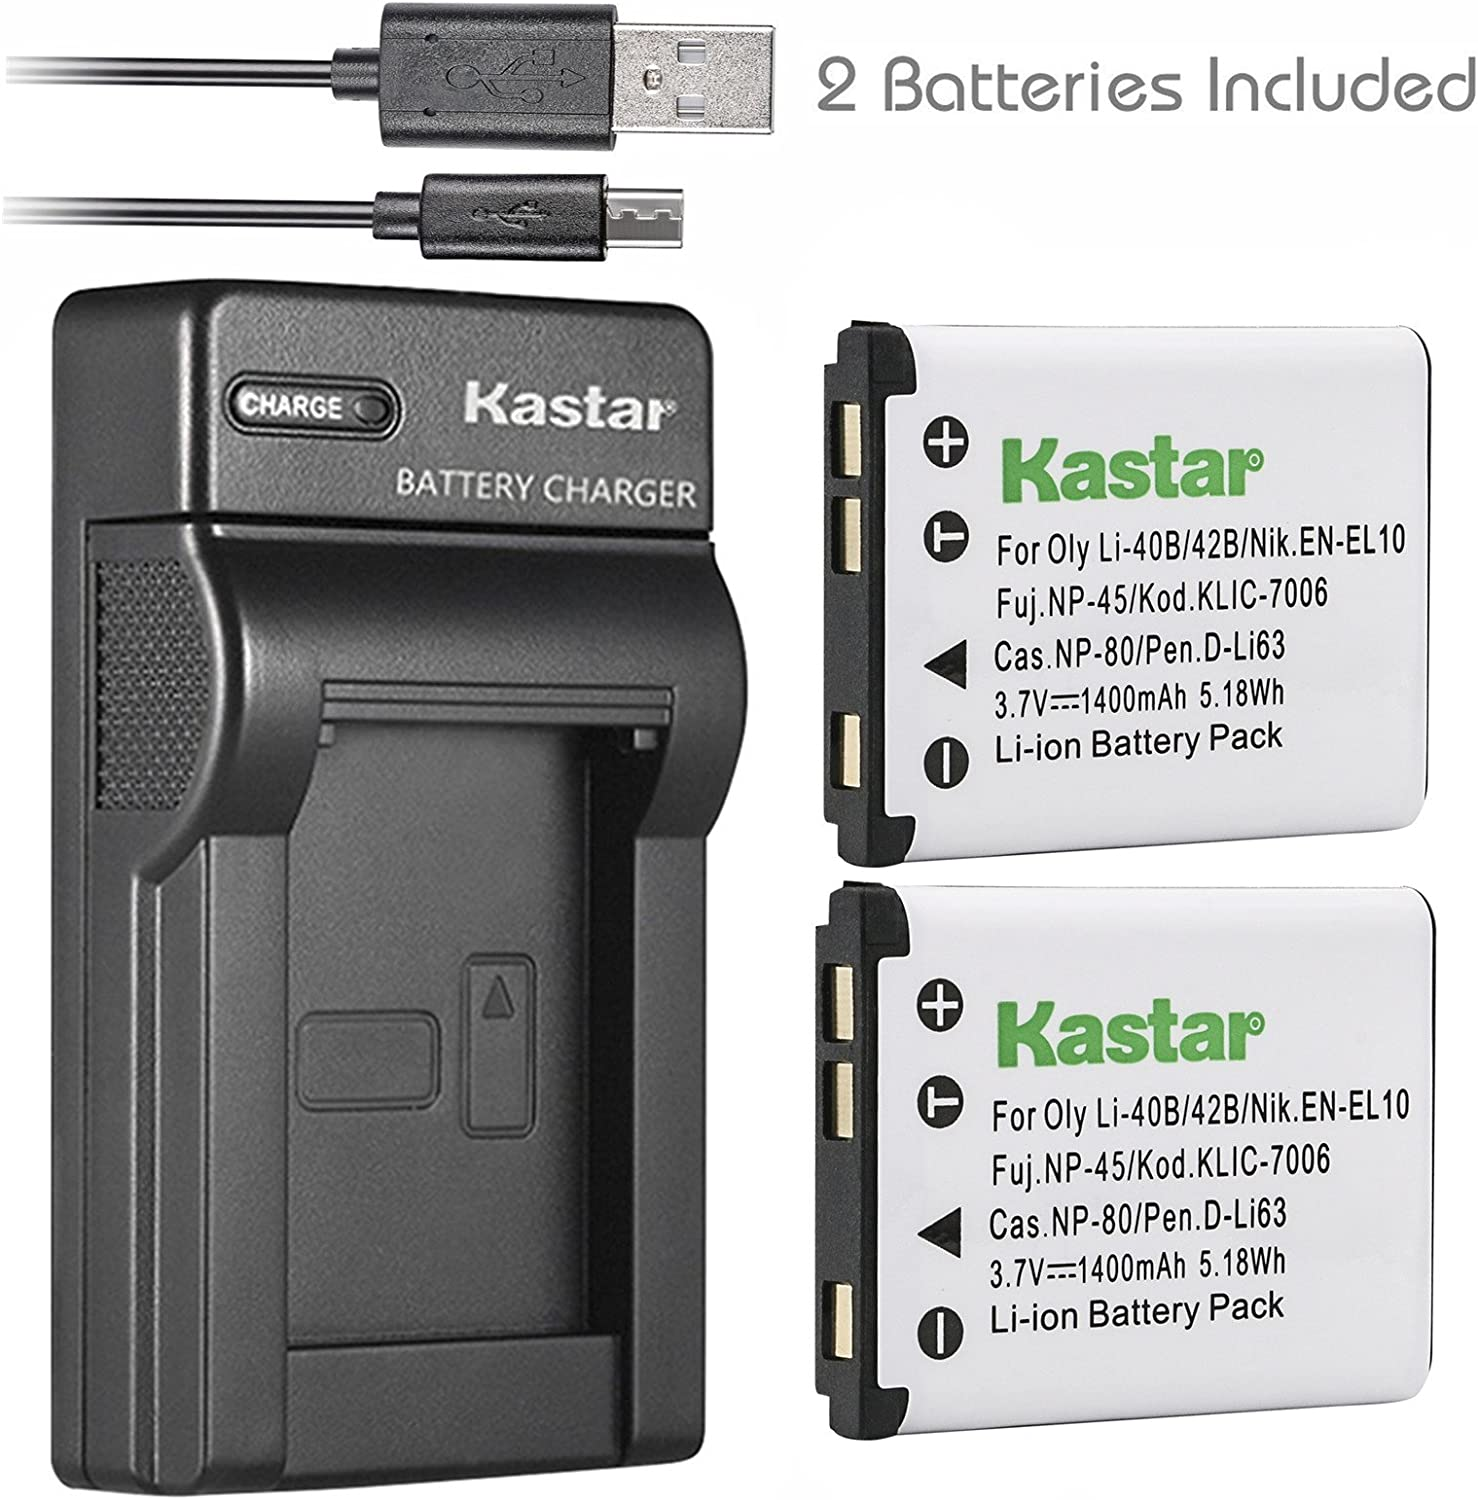 MH-63 Charger S230 S510 S220 S205 S4000 S80 S500 S210 S520 S200 Venwo 2 Pack EN-EL10 Battery and Micro USB Charger for Nikon Coolpix S60 S700 S600 S3000 S5100 Digital Cameras S570